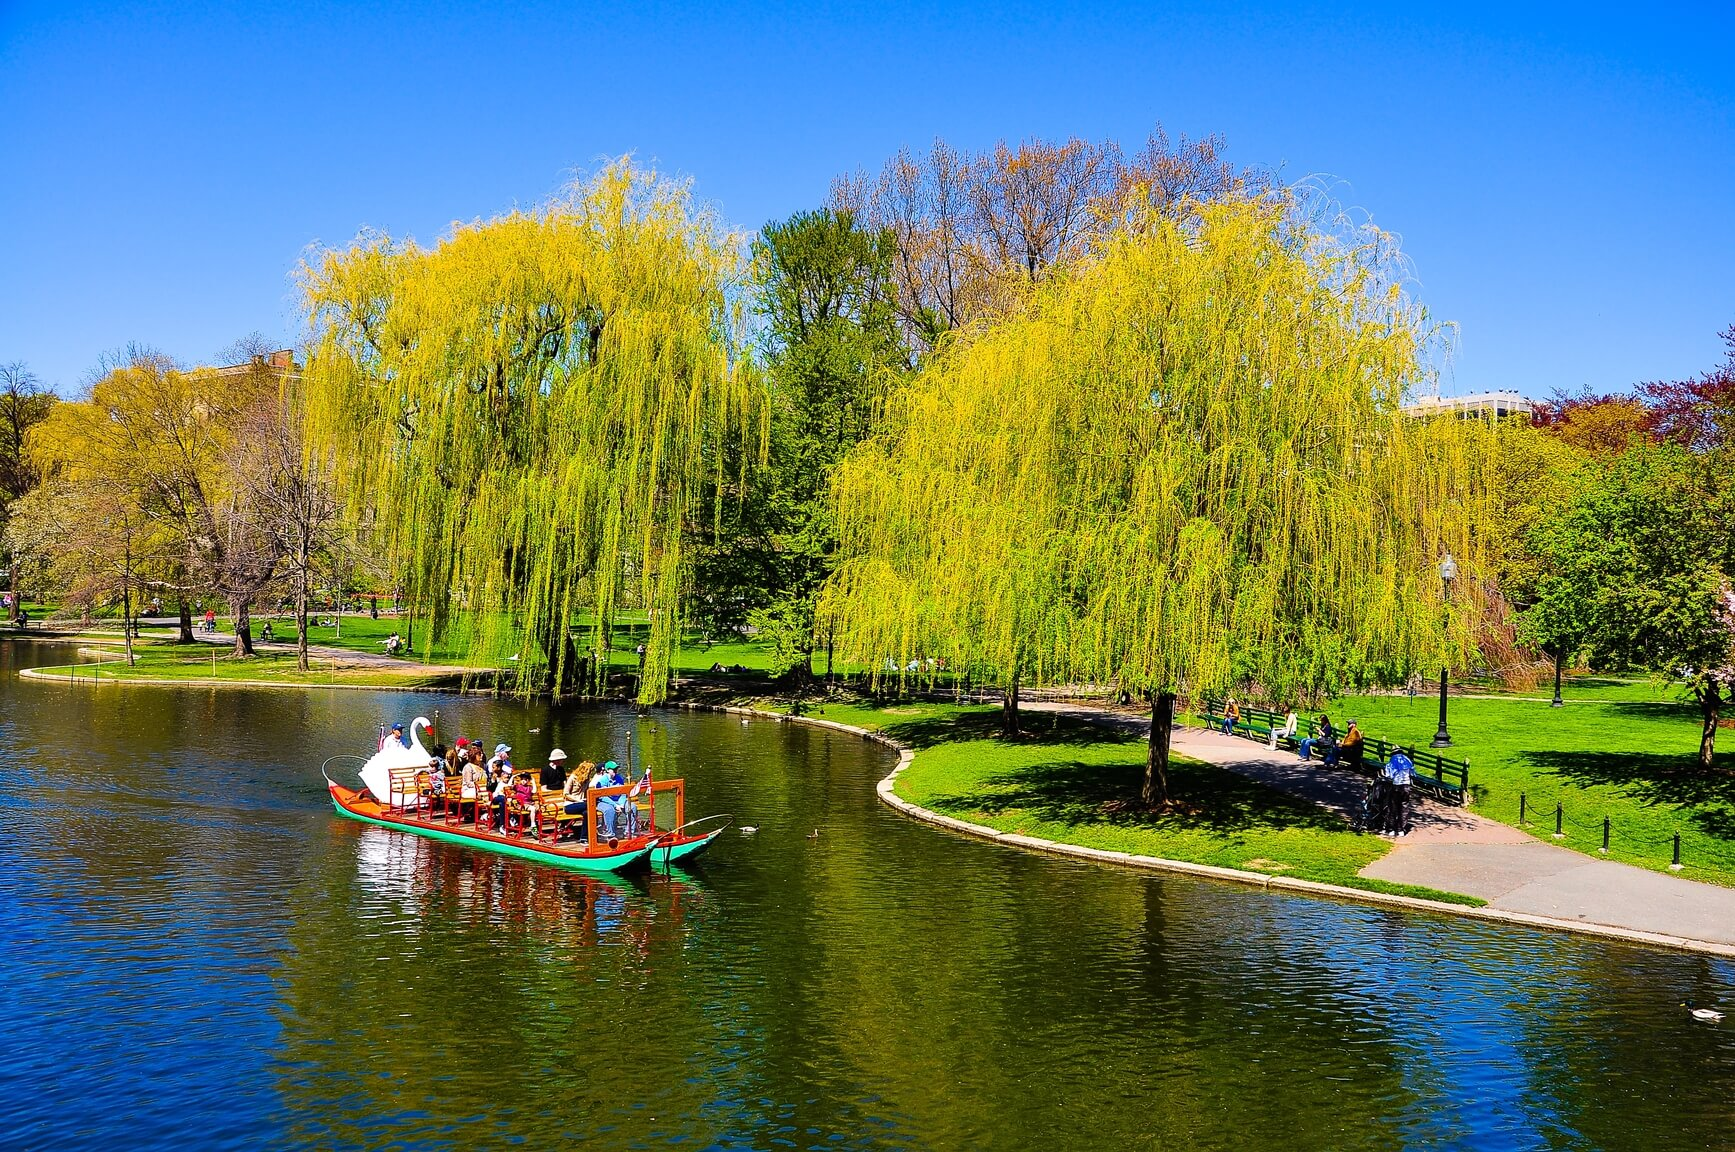 HOT!! Barcelona, Spain to Boston, USA for only €131 roundtrip